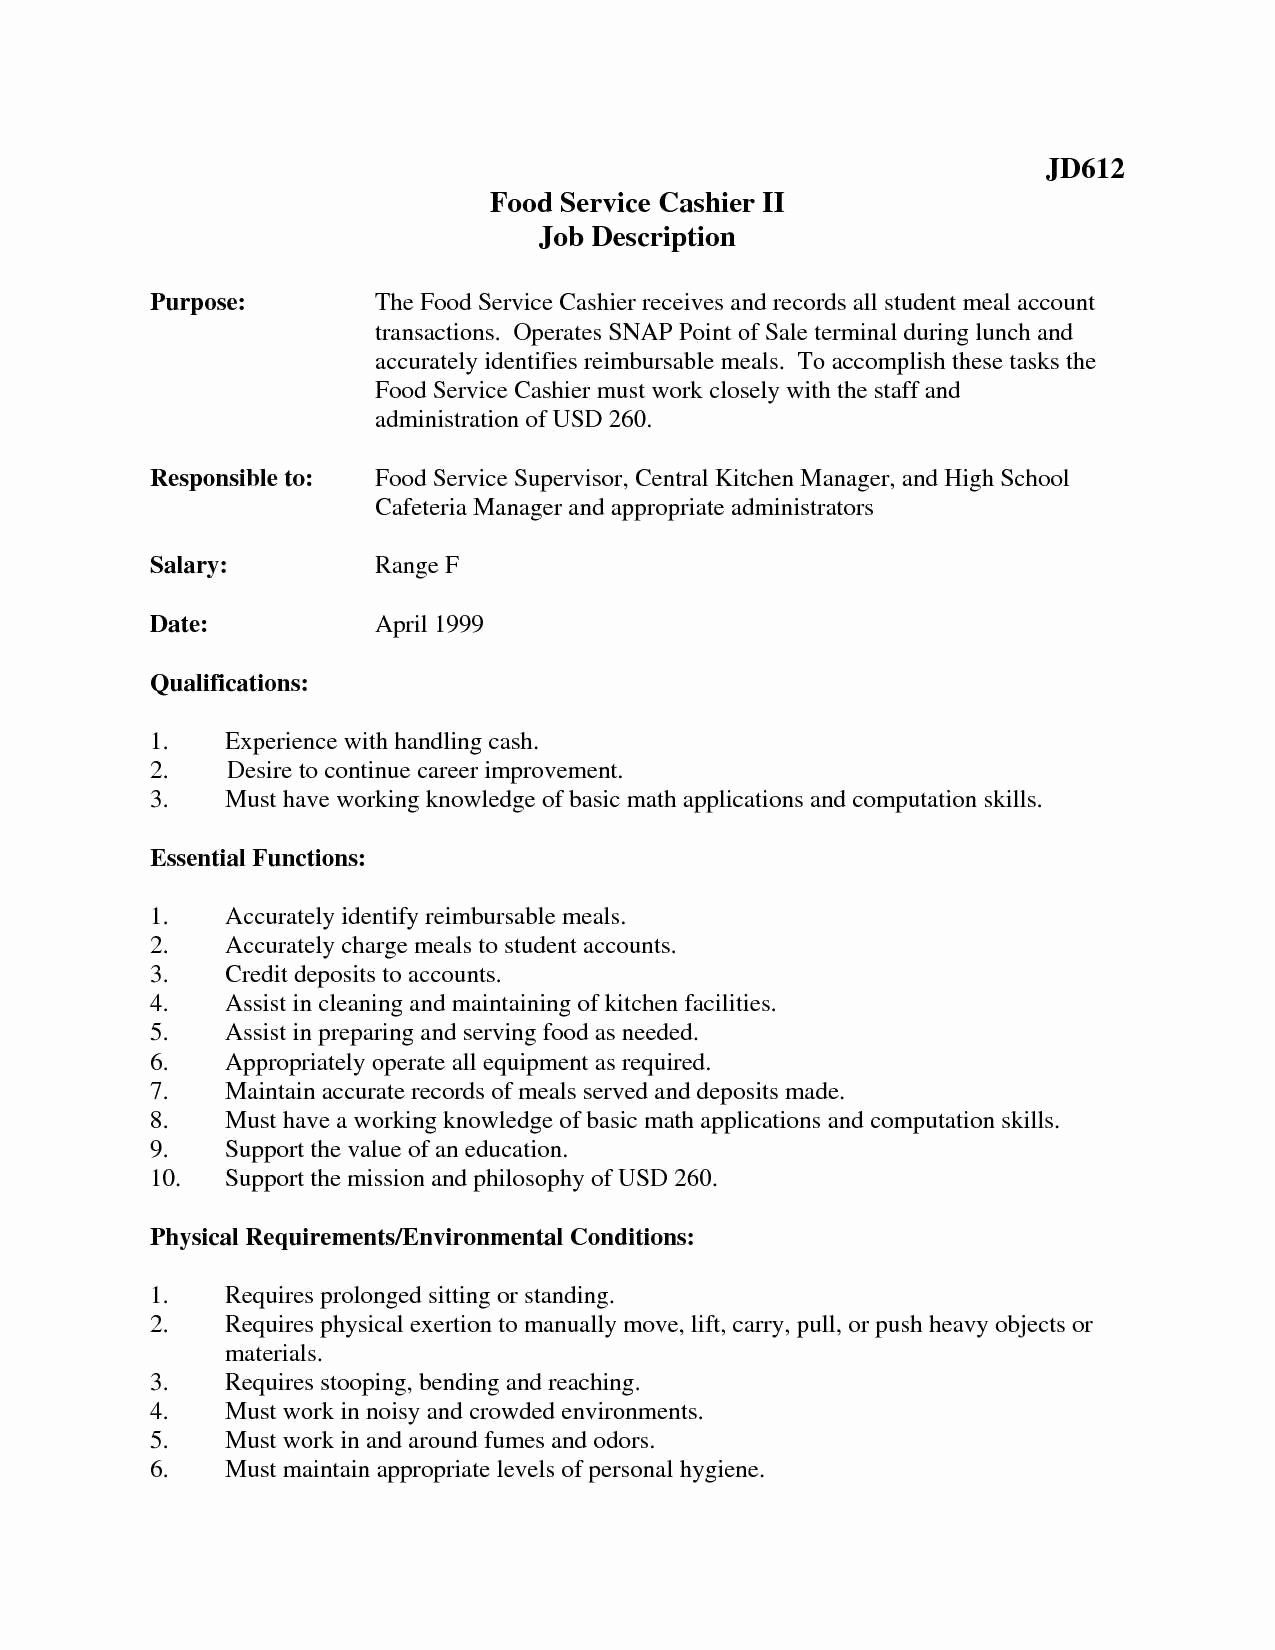 Documenting Employee Performance Template Unique Employee